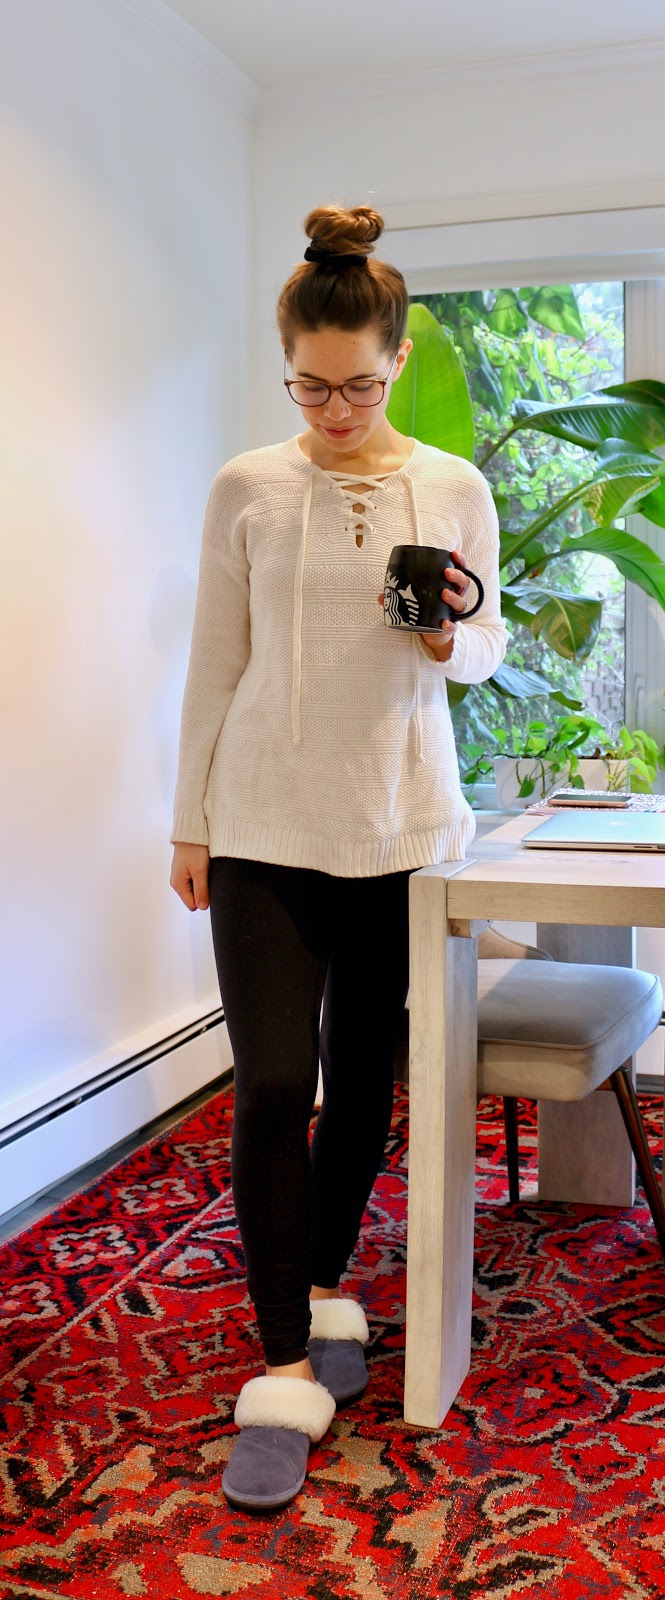 Jules in Flats - Lace-Up Sweater with Leggings (Easy Work from Home Outfit)